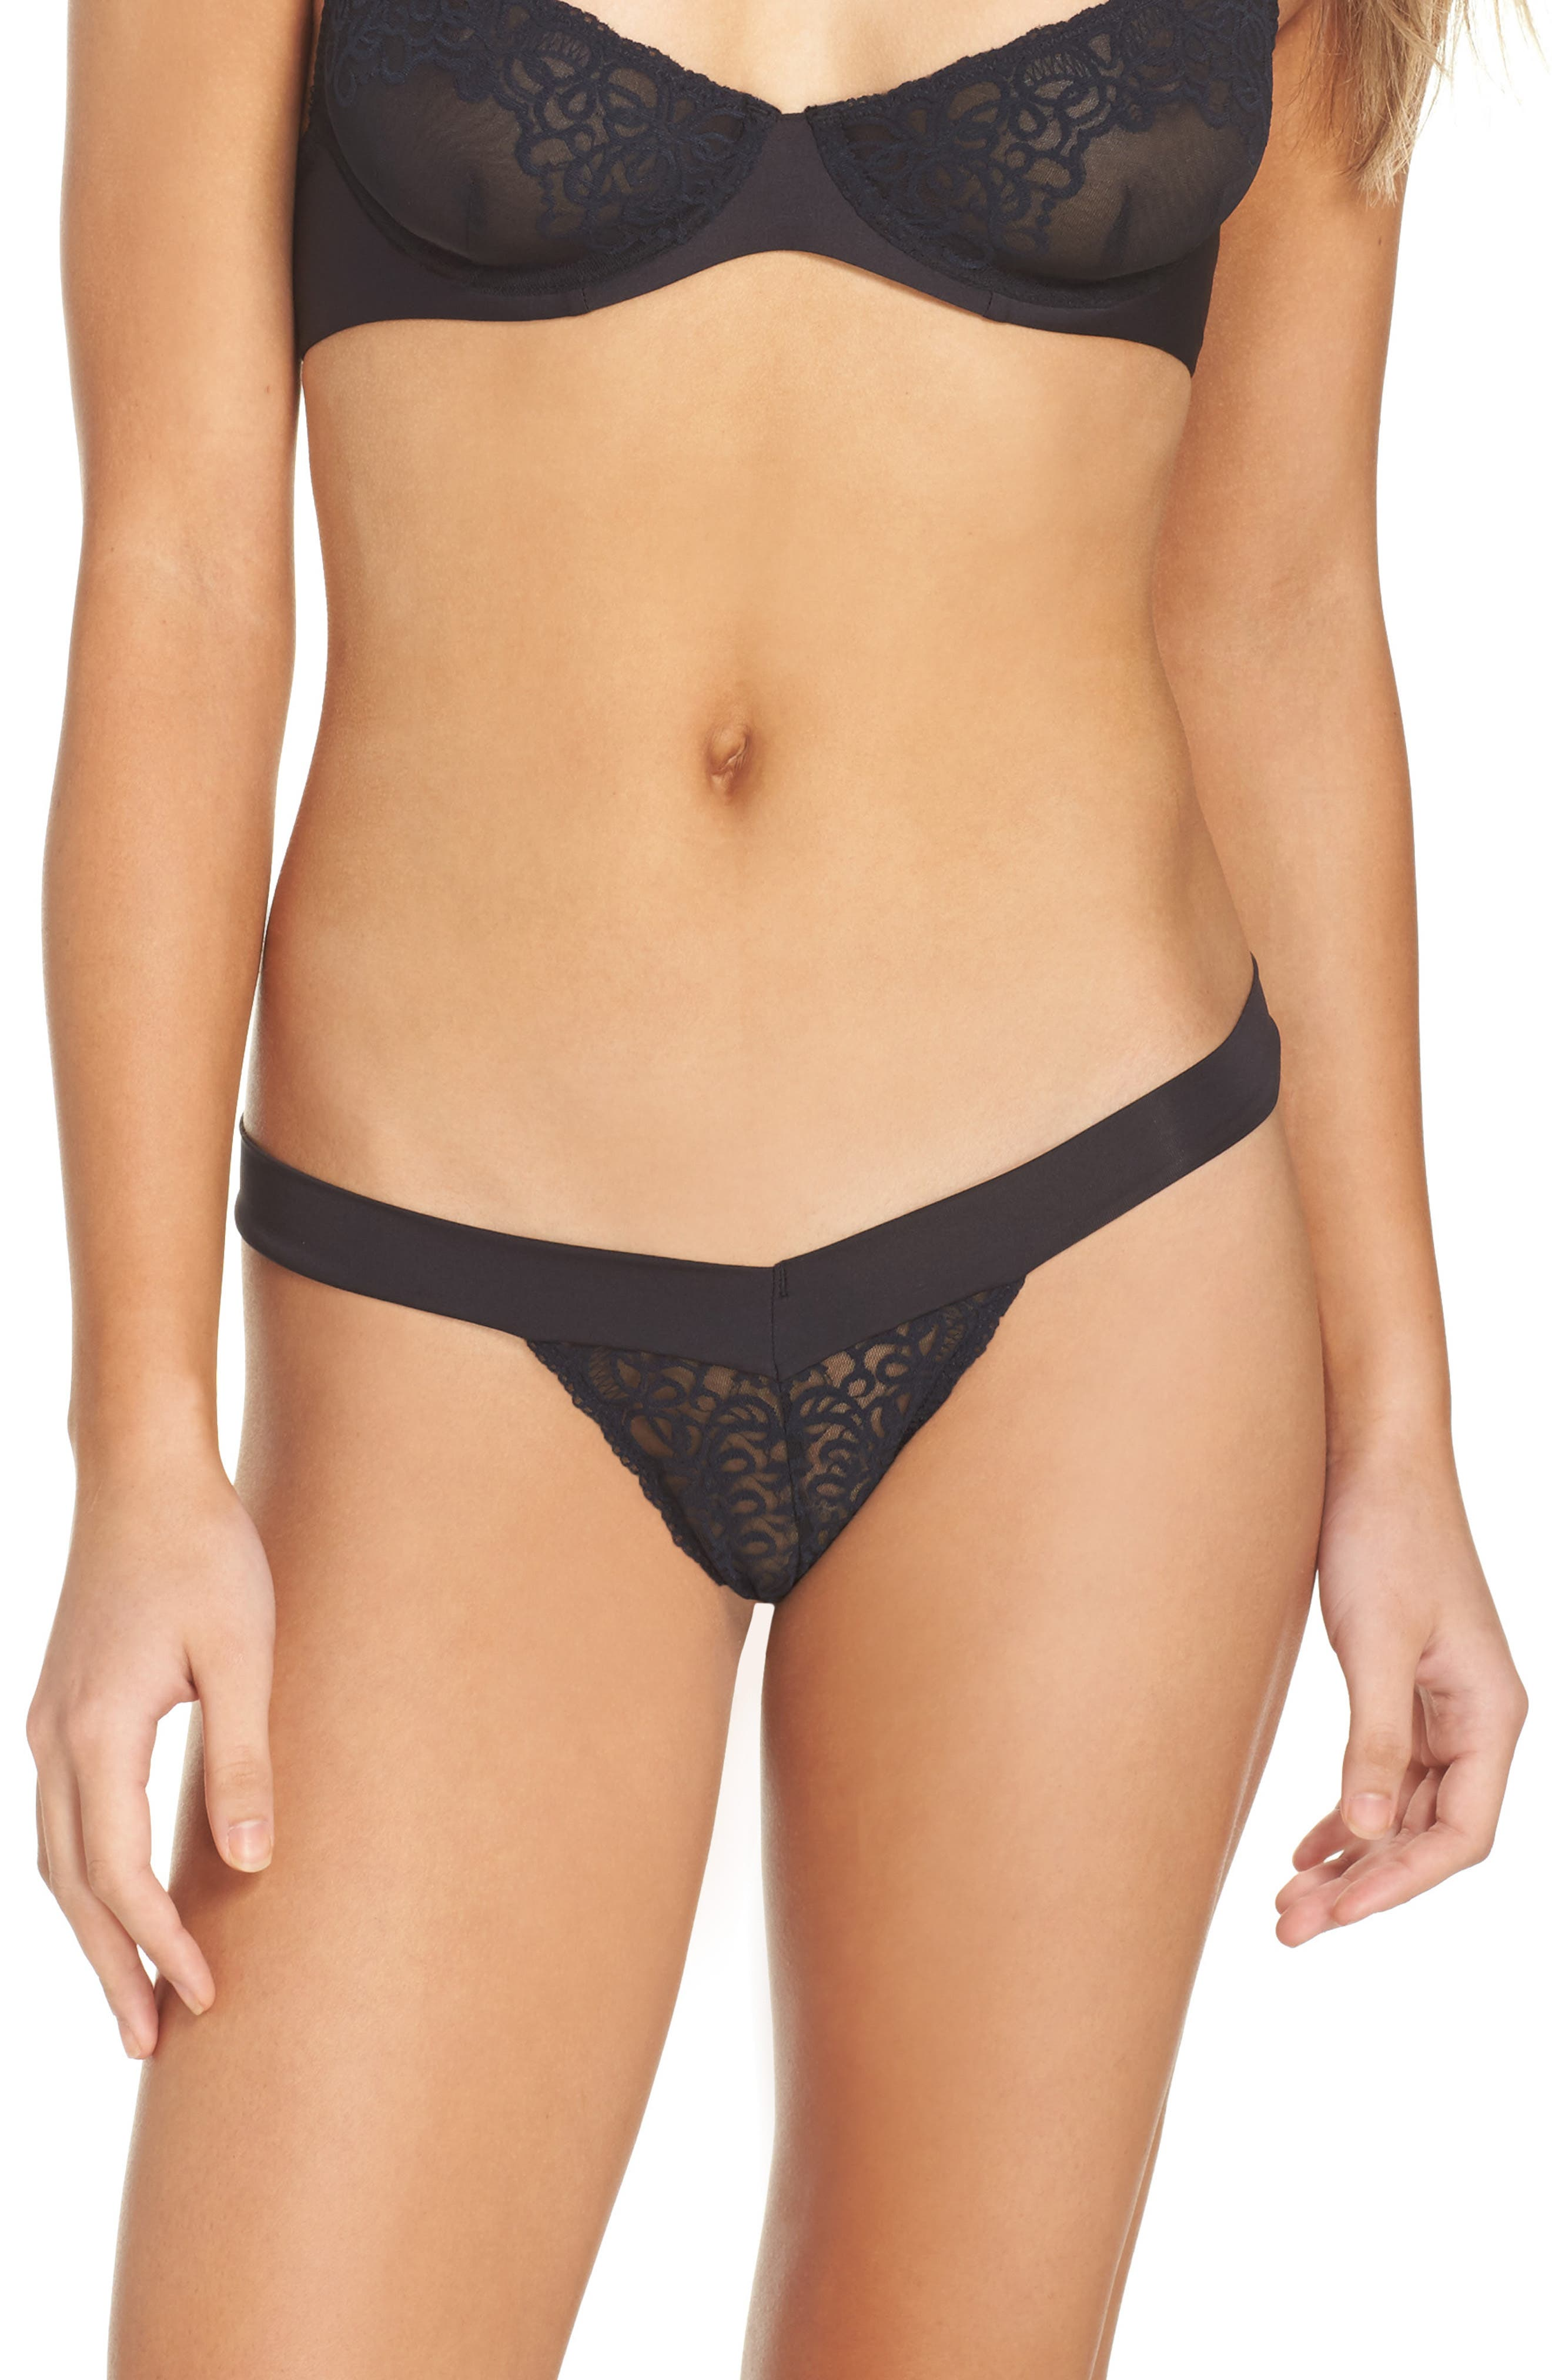 Intimately FP 'Wishing Well' Thong,                             Main thumbnail 1, color,                             001